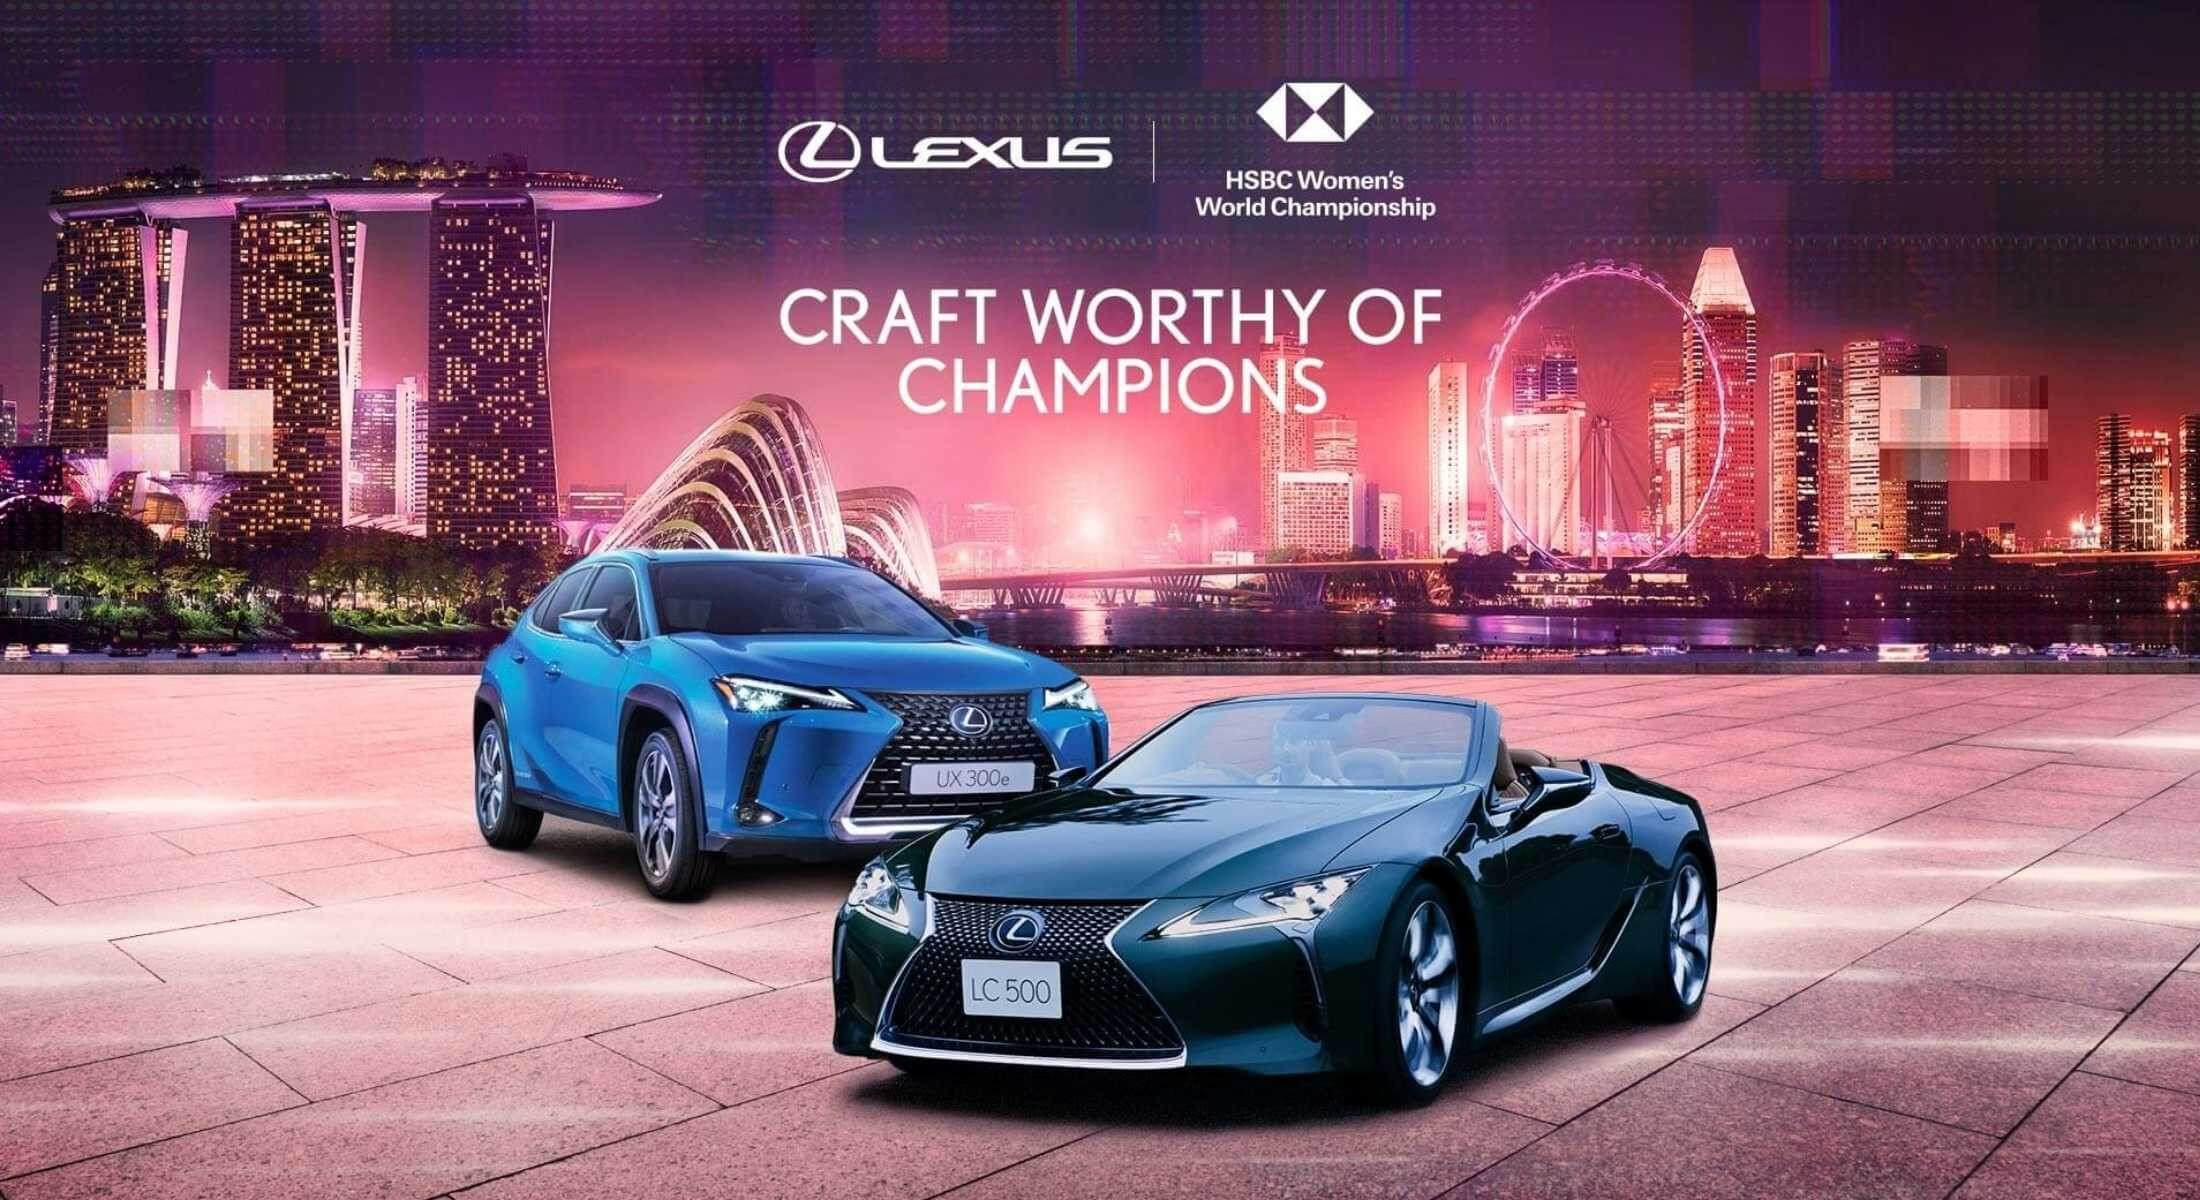 LEXUS SIGNS NEW SPONSORSHIP DEAL WITH  HSBC WOMEN'S WORLD CHAMPIONSHIP 2021